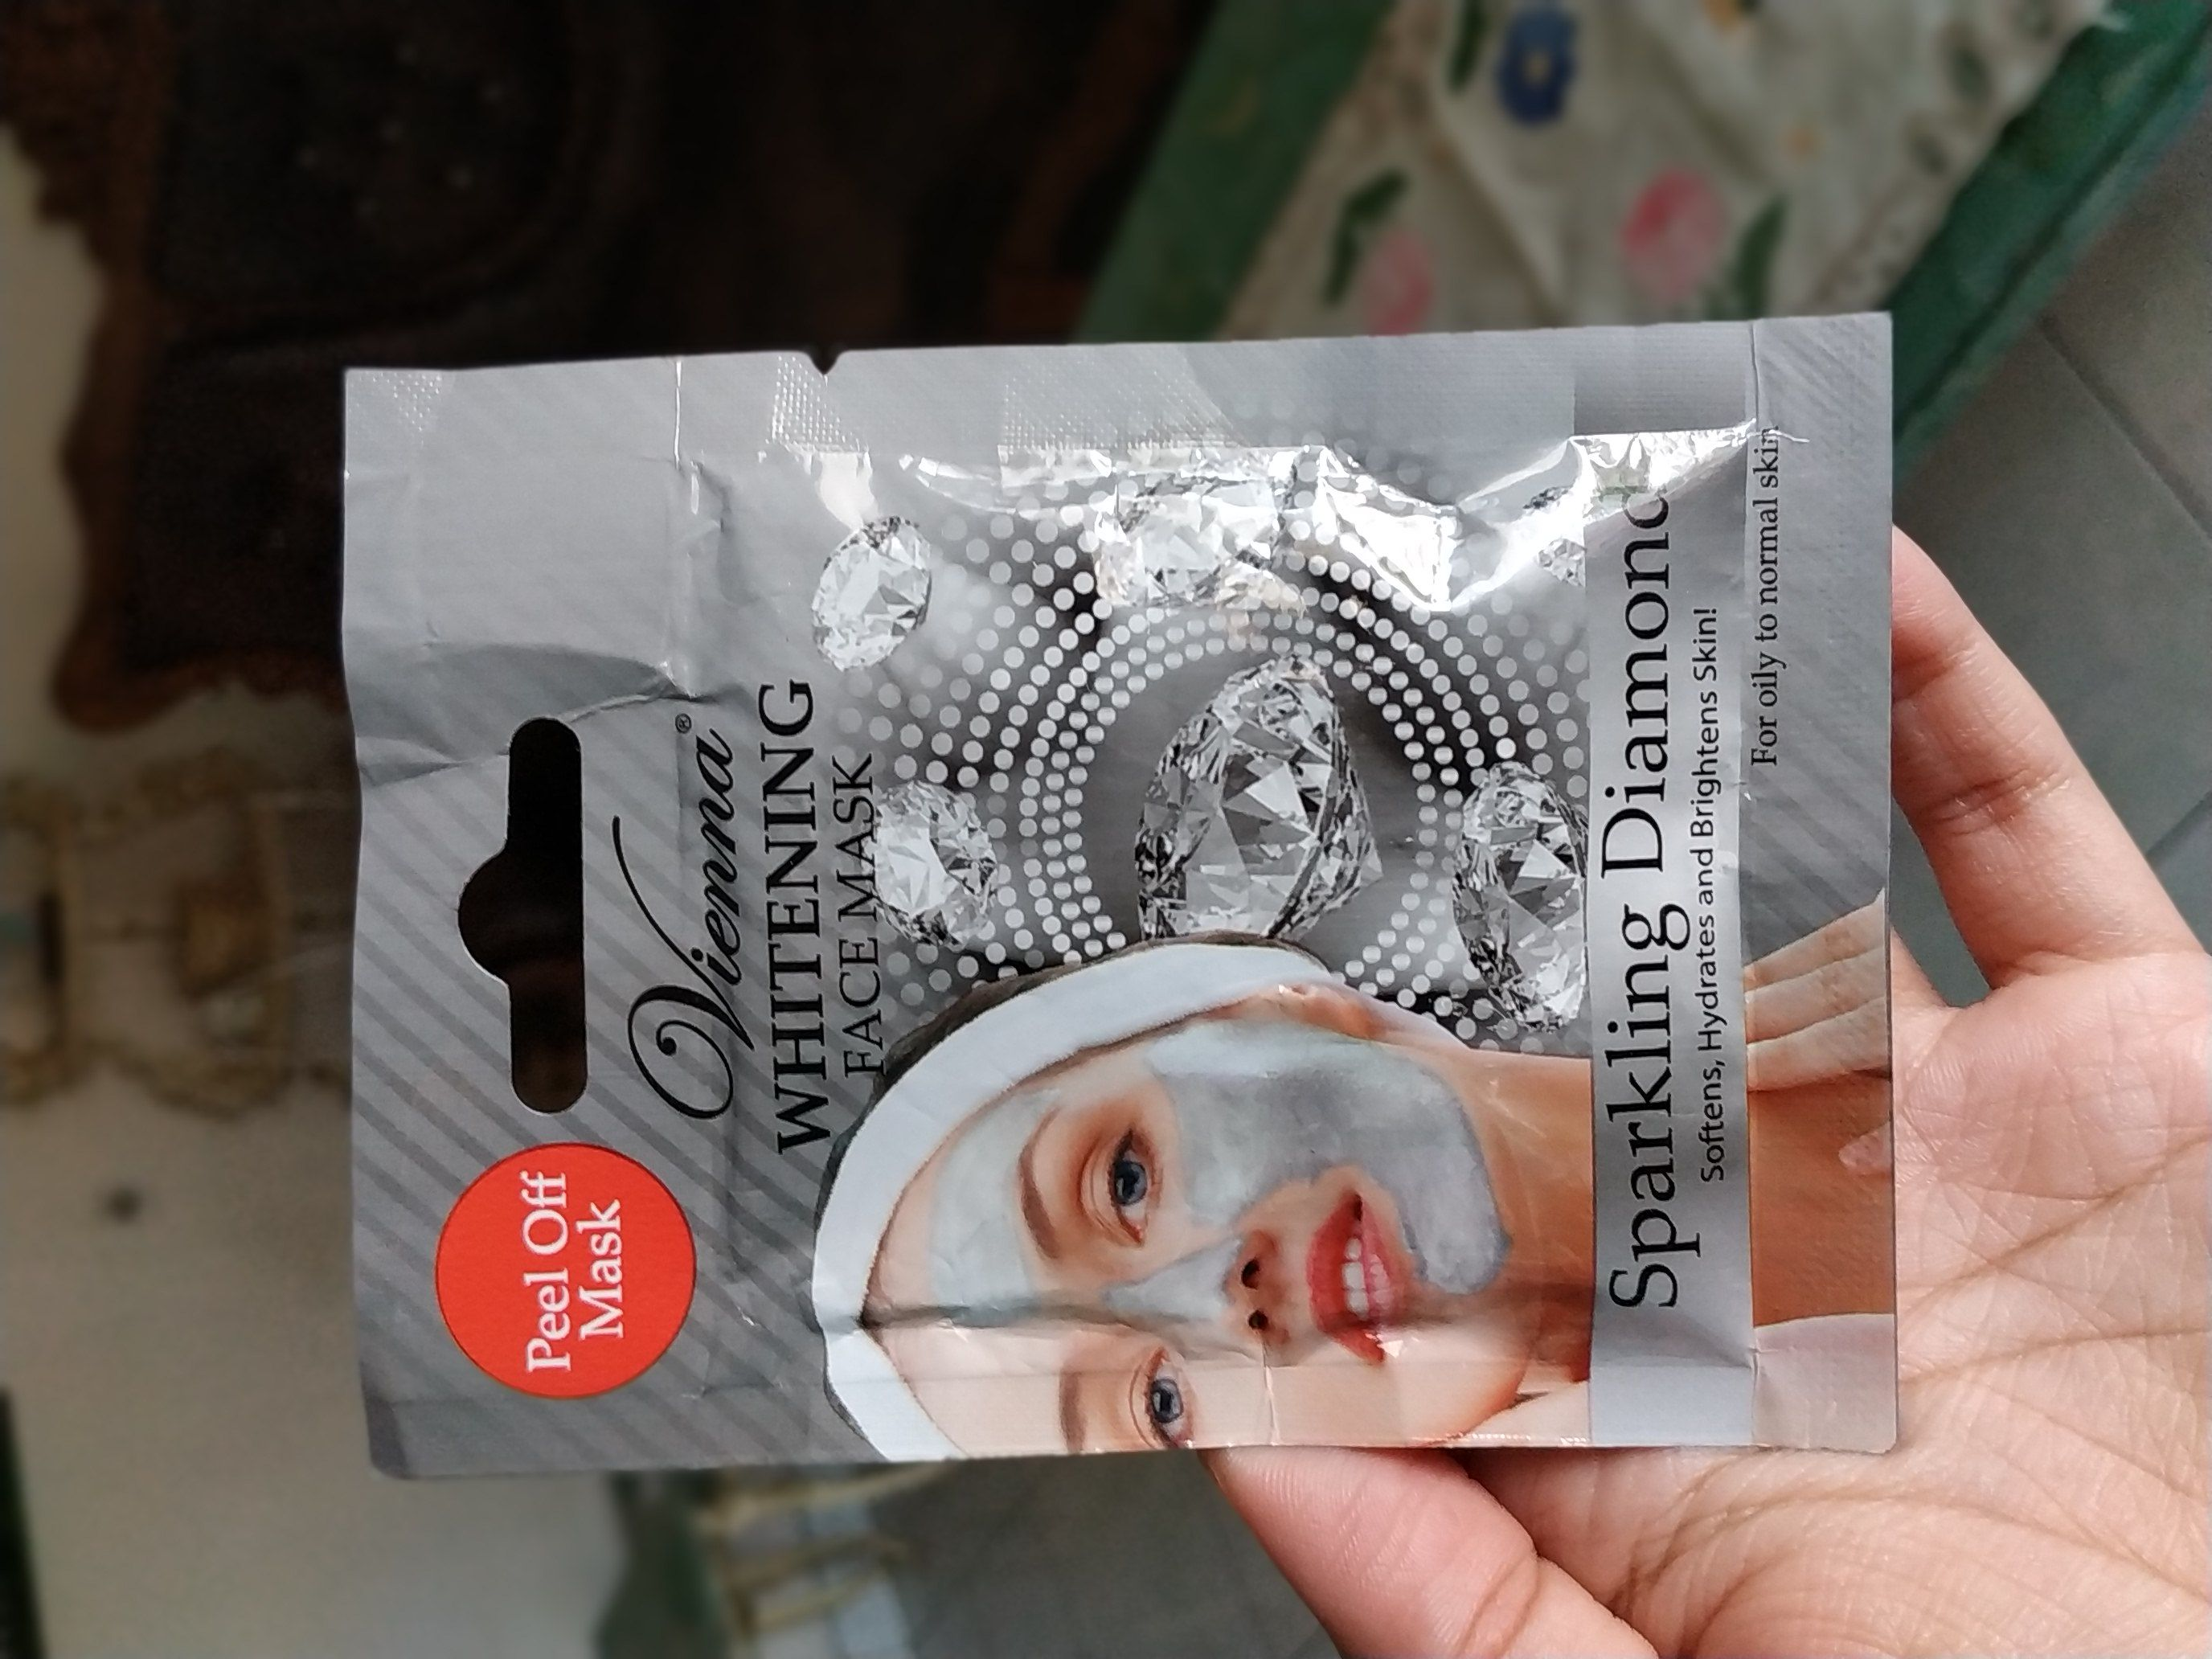 image review Vienna Whitening Face Mask Sparkling Diamond